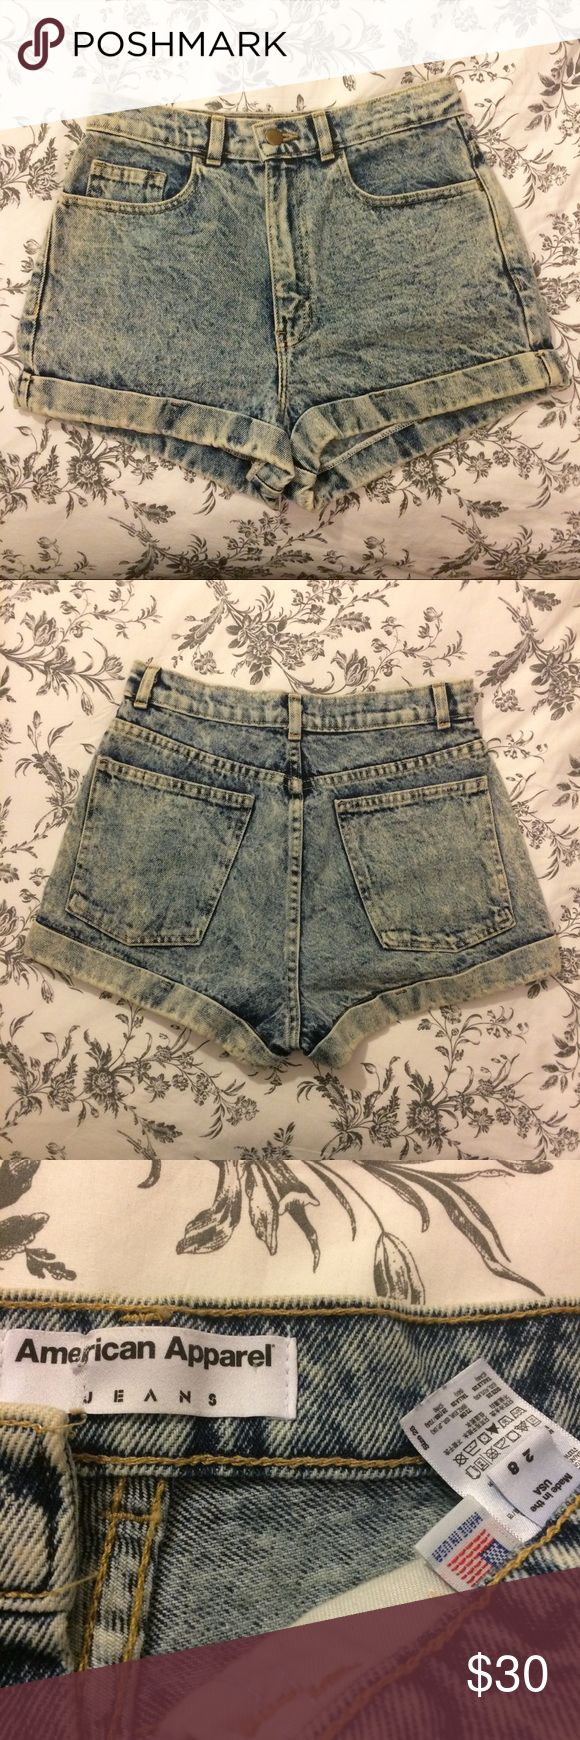 American Apparel High Waisted Acid-Wash Shorts American Apparel High Waisted Acid-Wash Jean Shorts. Size 28. Like New!  Re-posh, worn once by seller, never by me, didn't fit. High-Waisted, High Rose, Mom Jeans.  Bundle and Save! Offers Welcome :) American Apparel Shorts